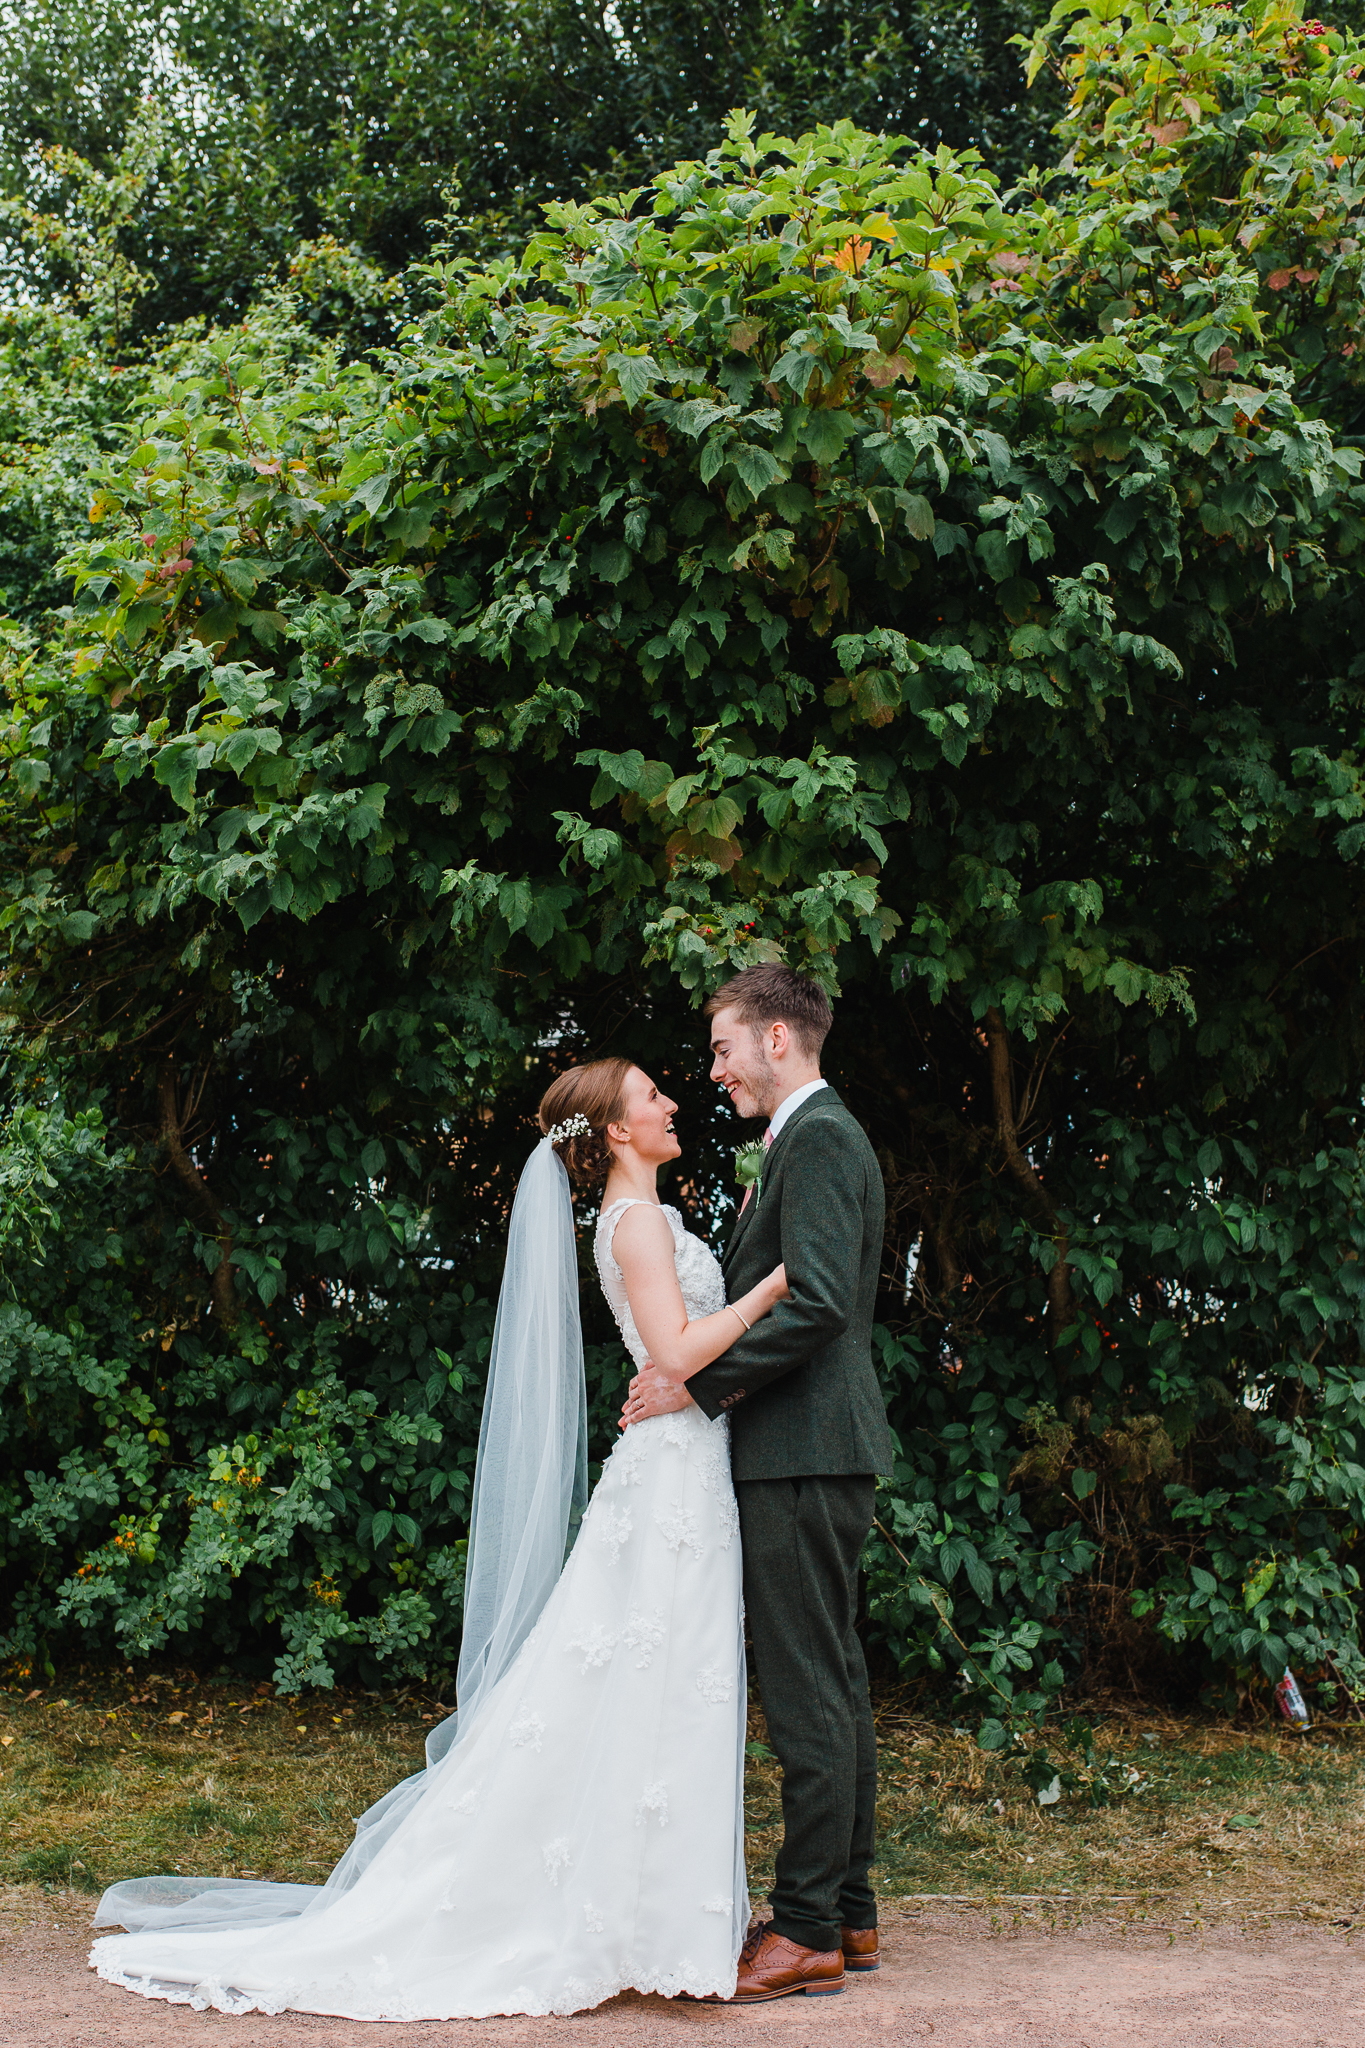 Jess and Ben - Liverpool wedding - bride and groom laughing